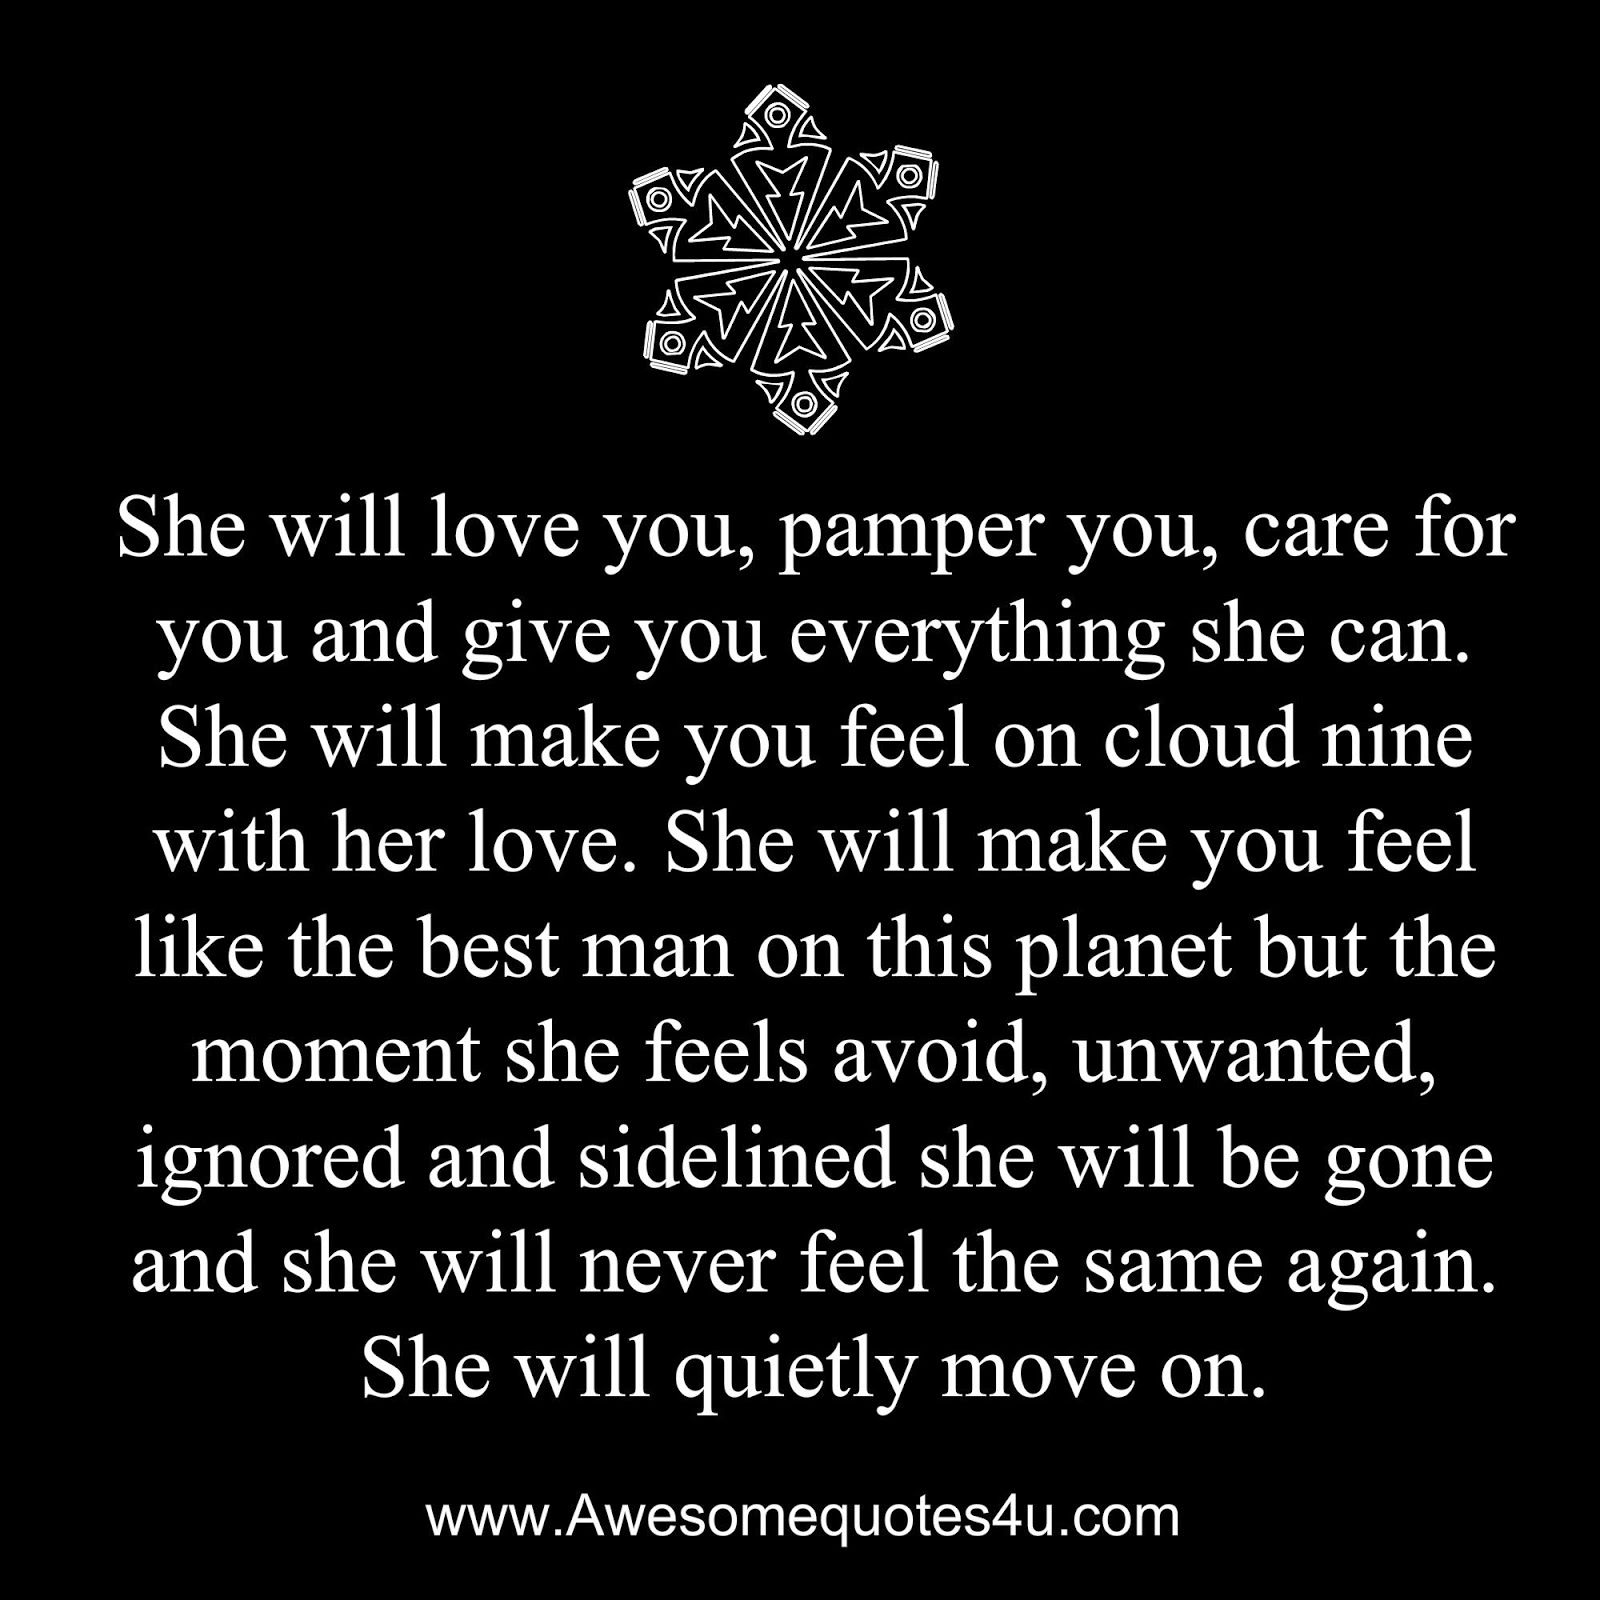 Awesome Quotes: ONE DAY SHE WILL QUIETLY MOVE ON…